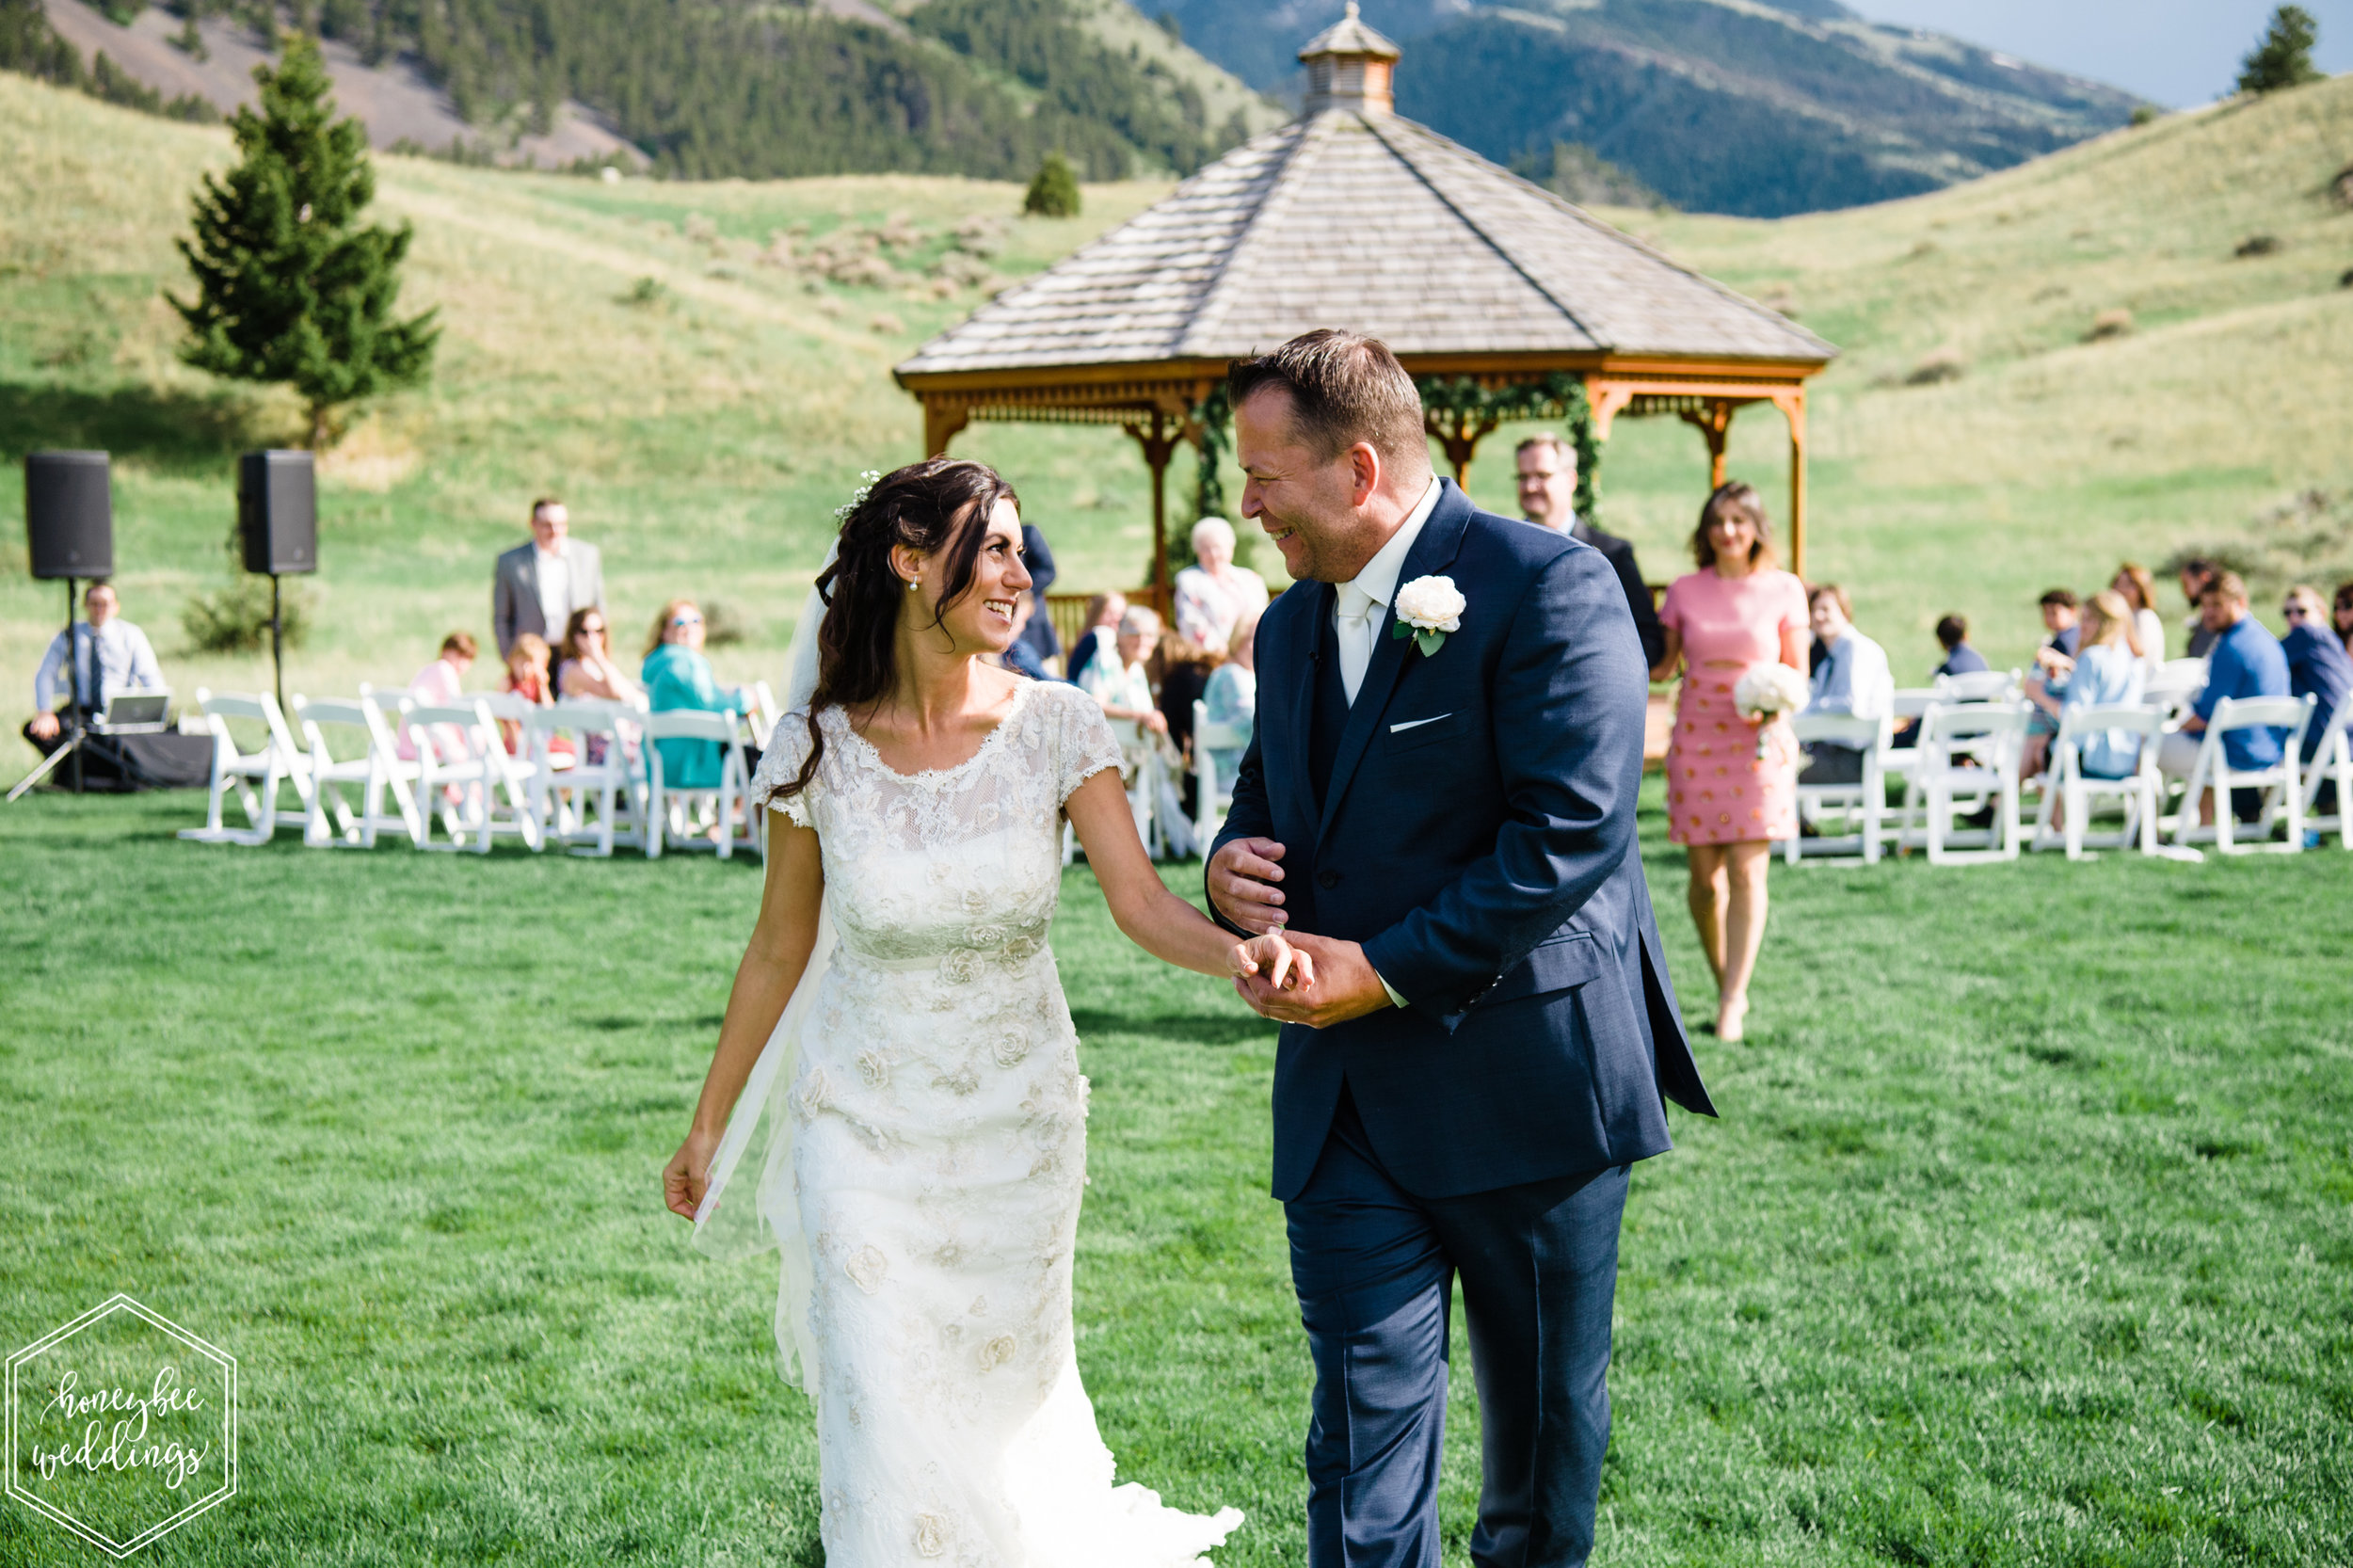 013Montana wedding photographer videographer_Chico hot springs wedding_Honeybee Weddings_Claudia & Bill_June 03, 2019-230.jpg